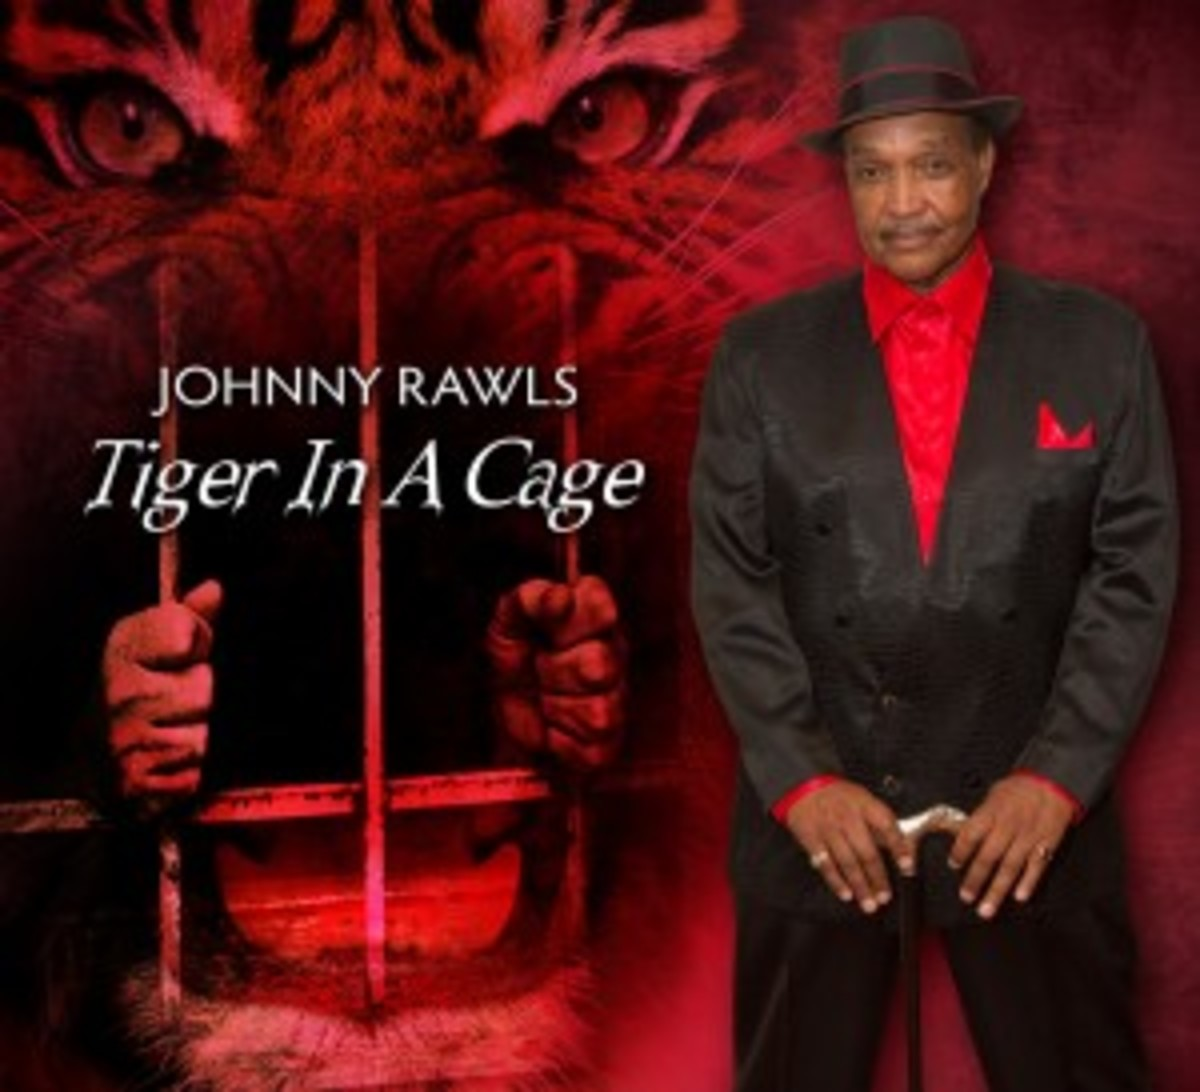 Tiger in a Cage Hi-Res Cover